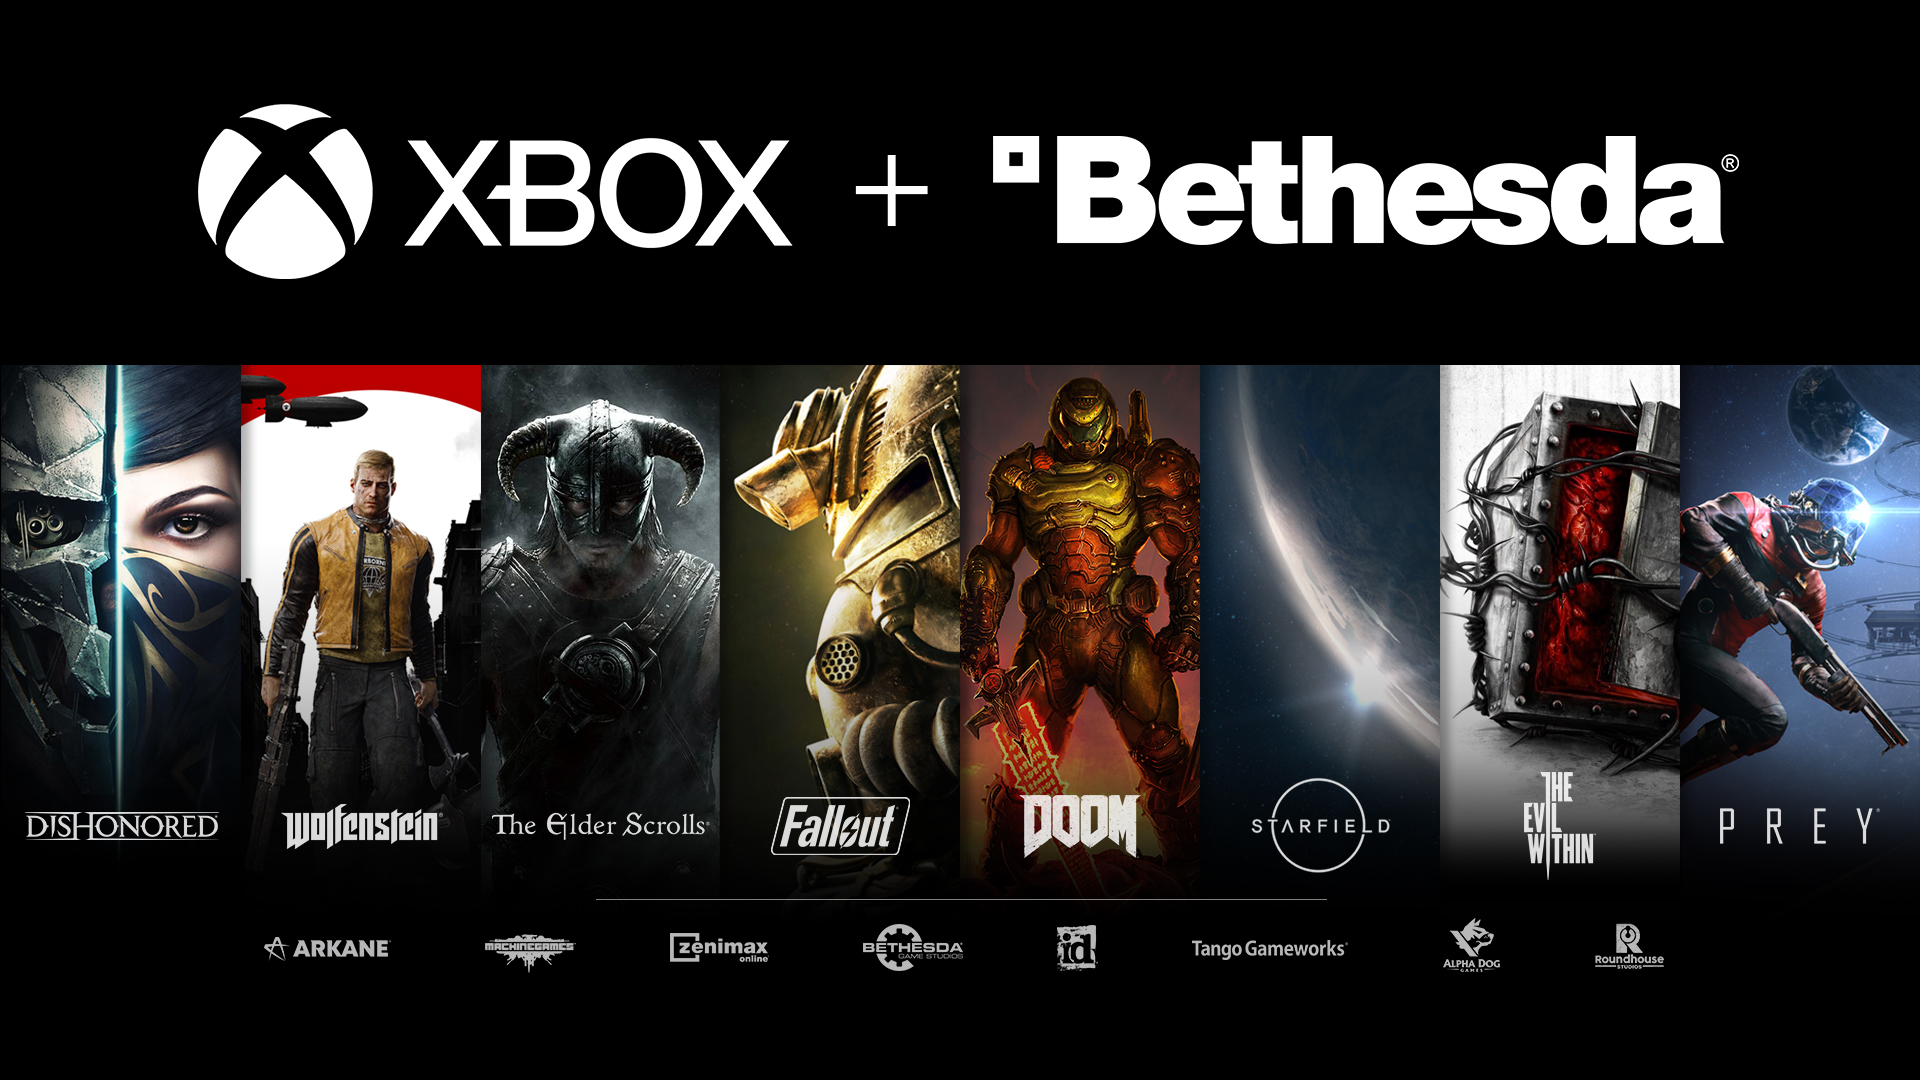 Microsoft's Bethesda deal: Great for Game Pass, troubling for exclusives | Engadget